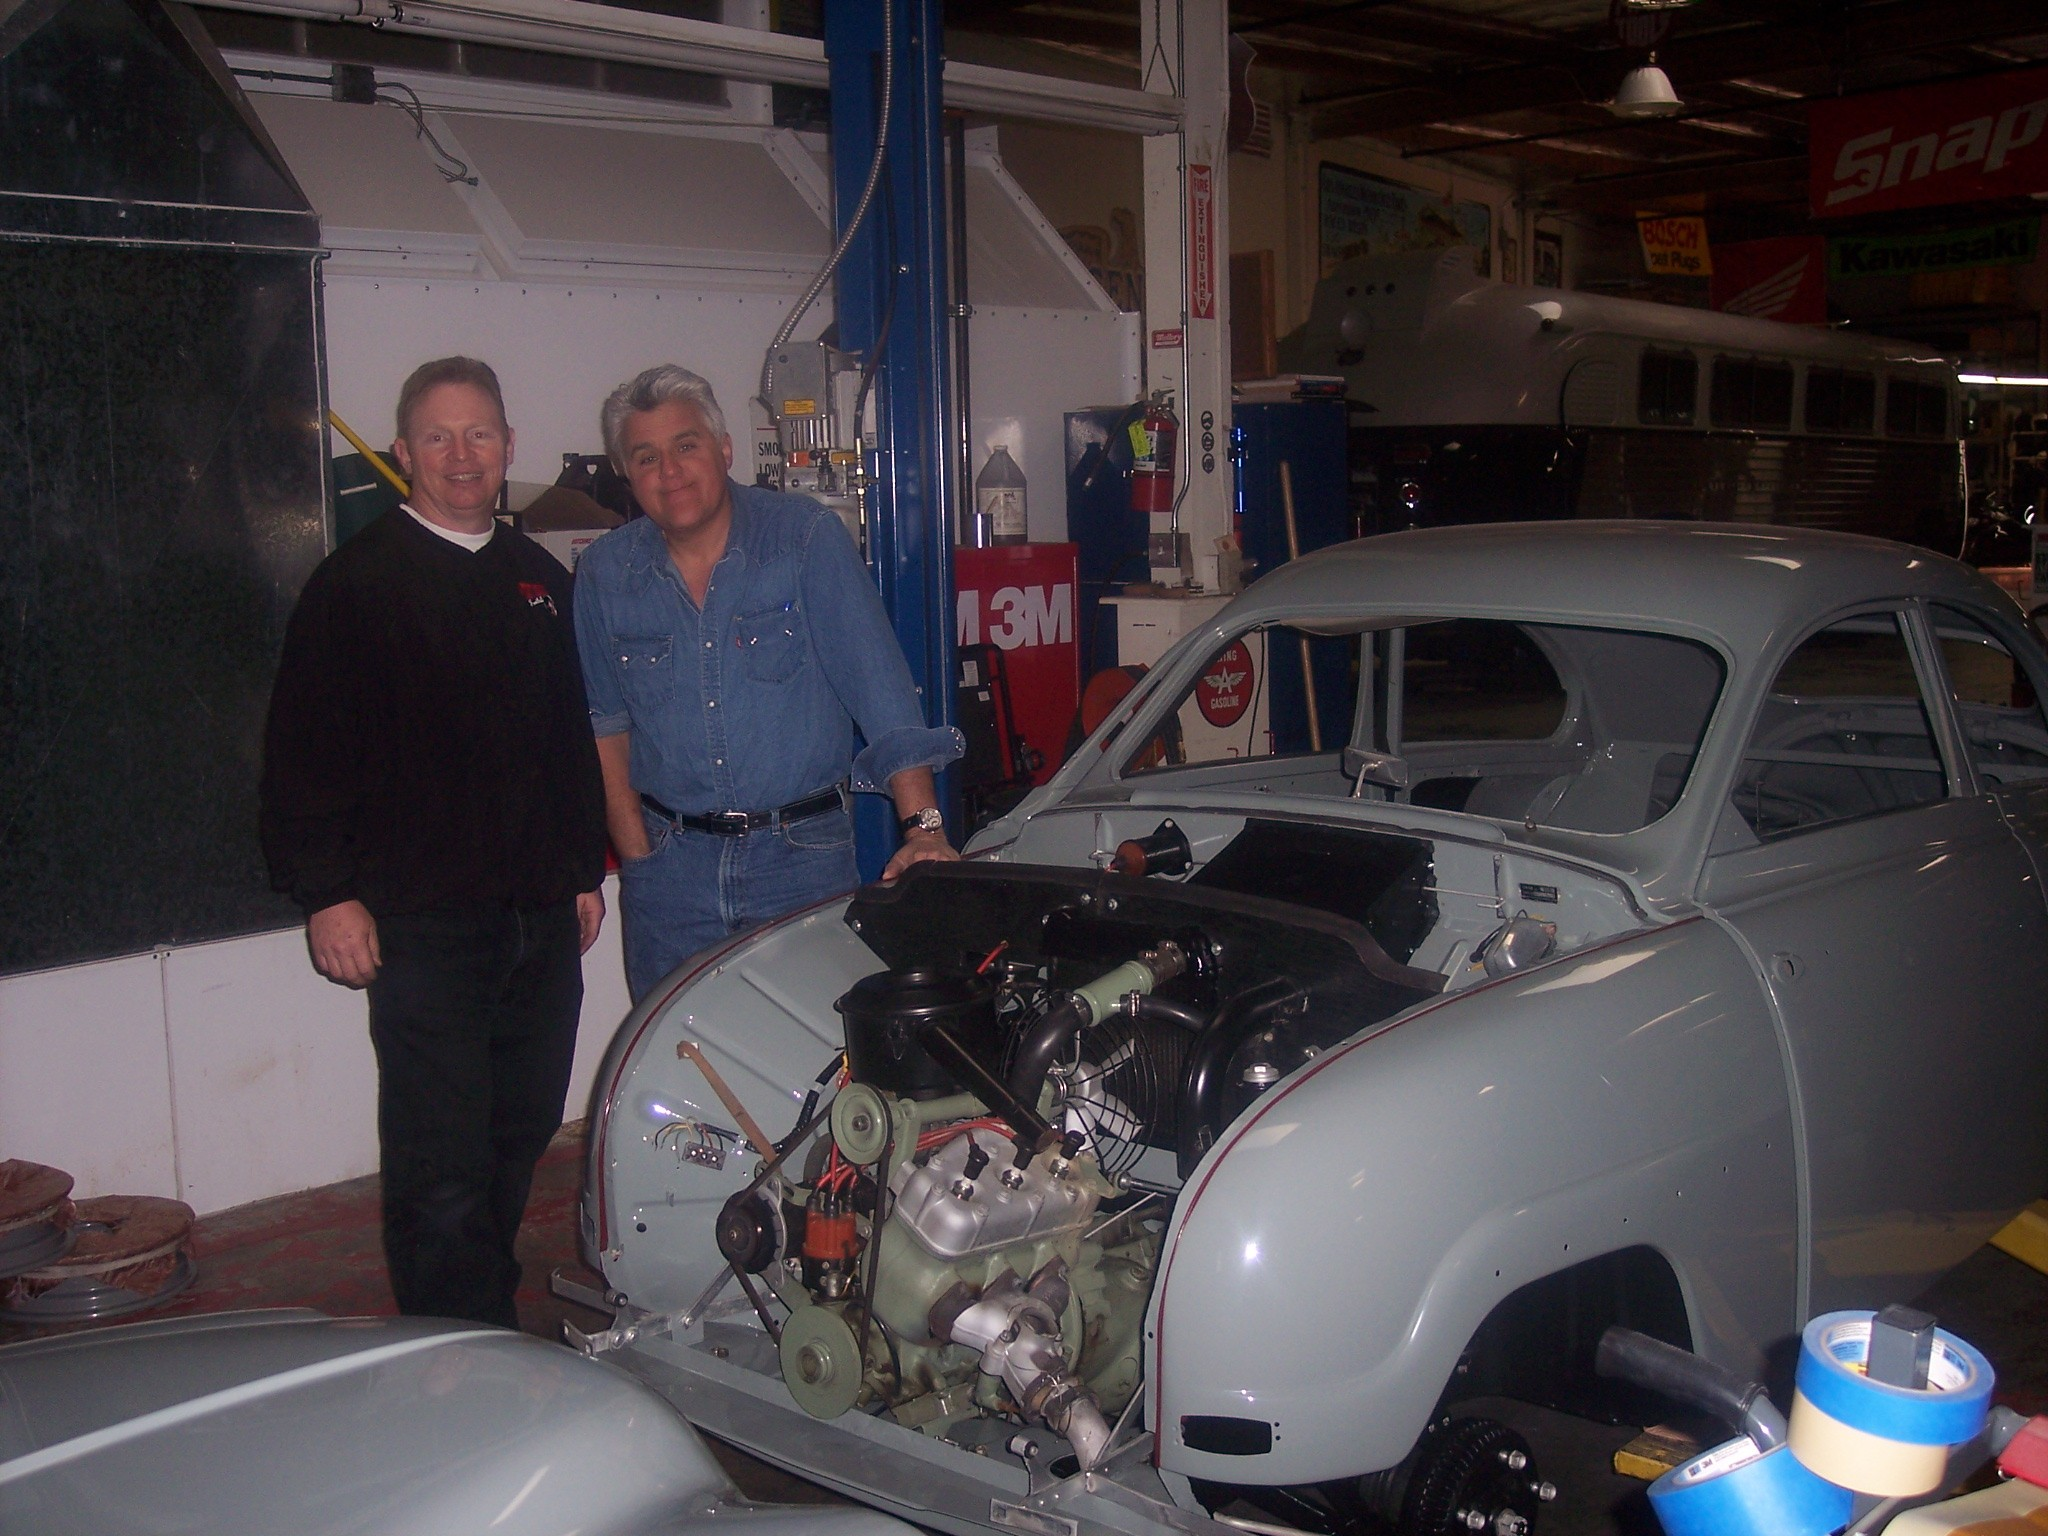 Tom Donney and Jay Leno